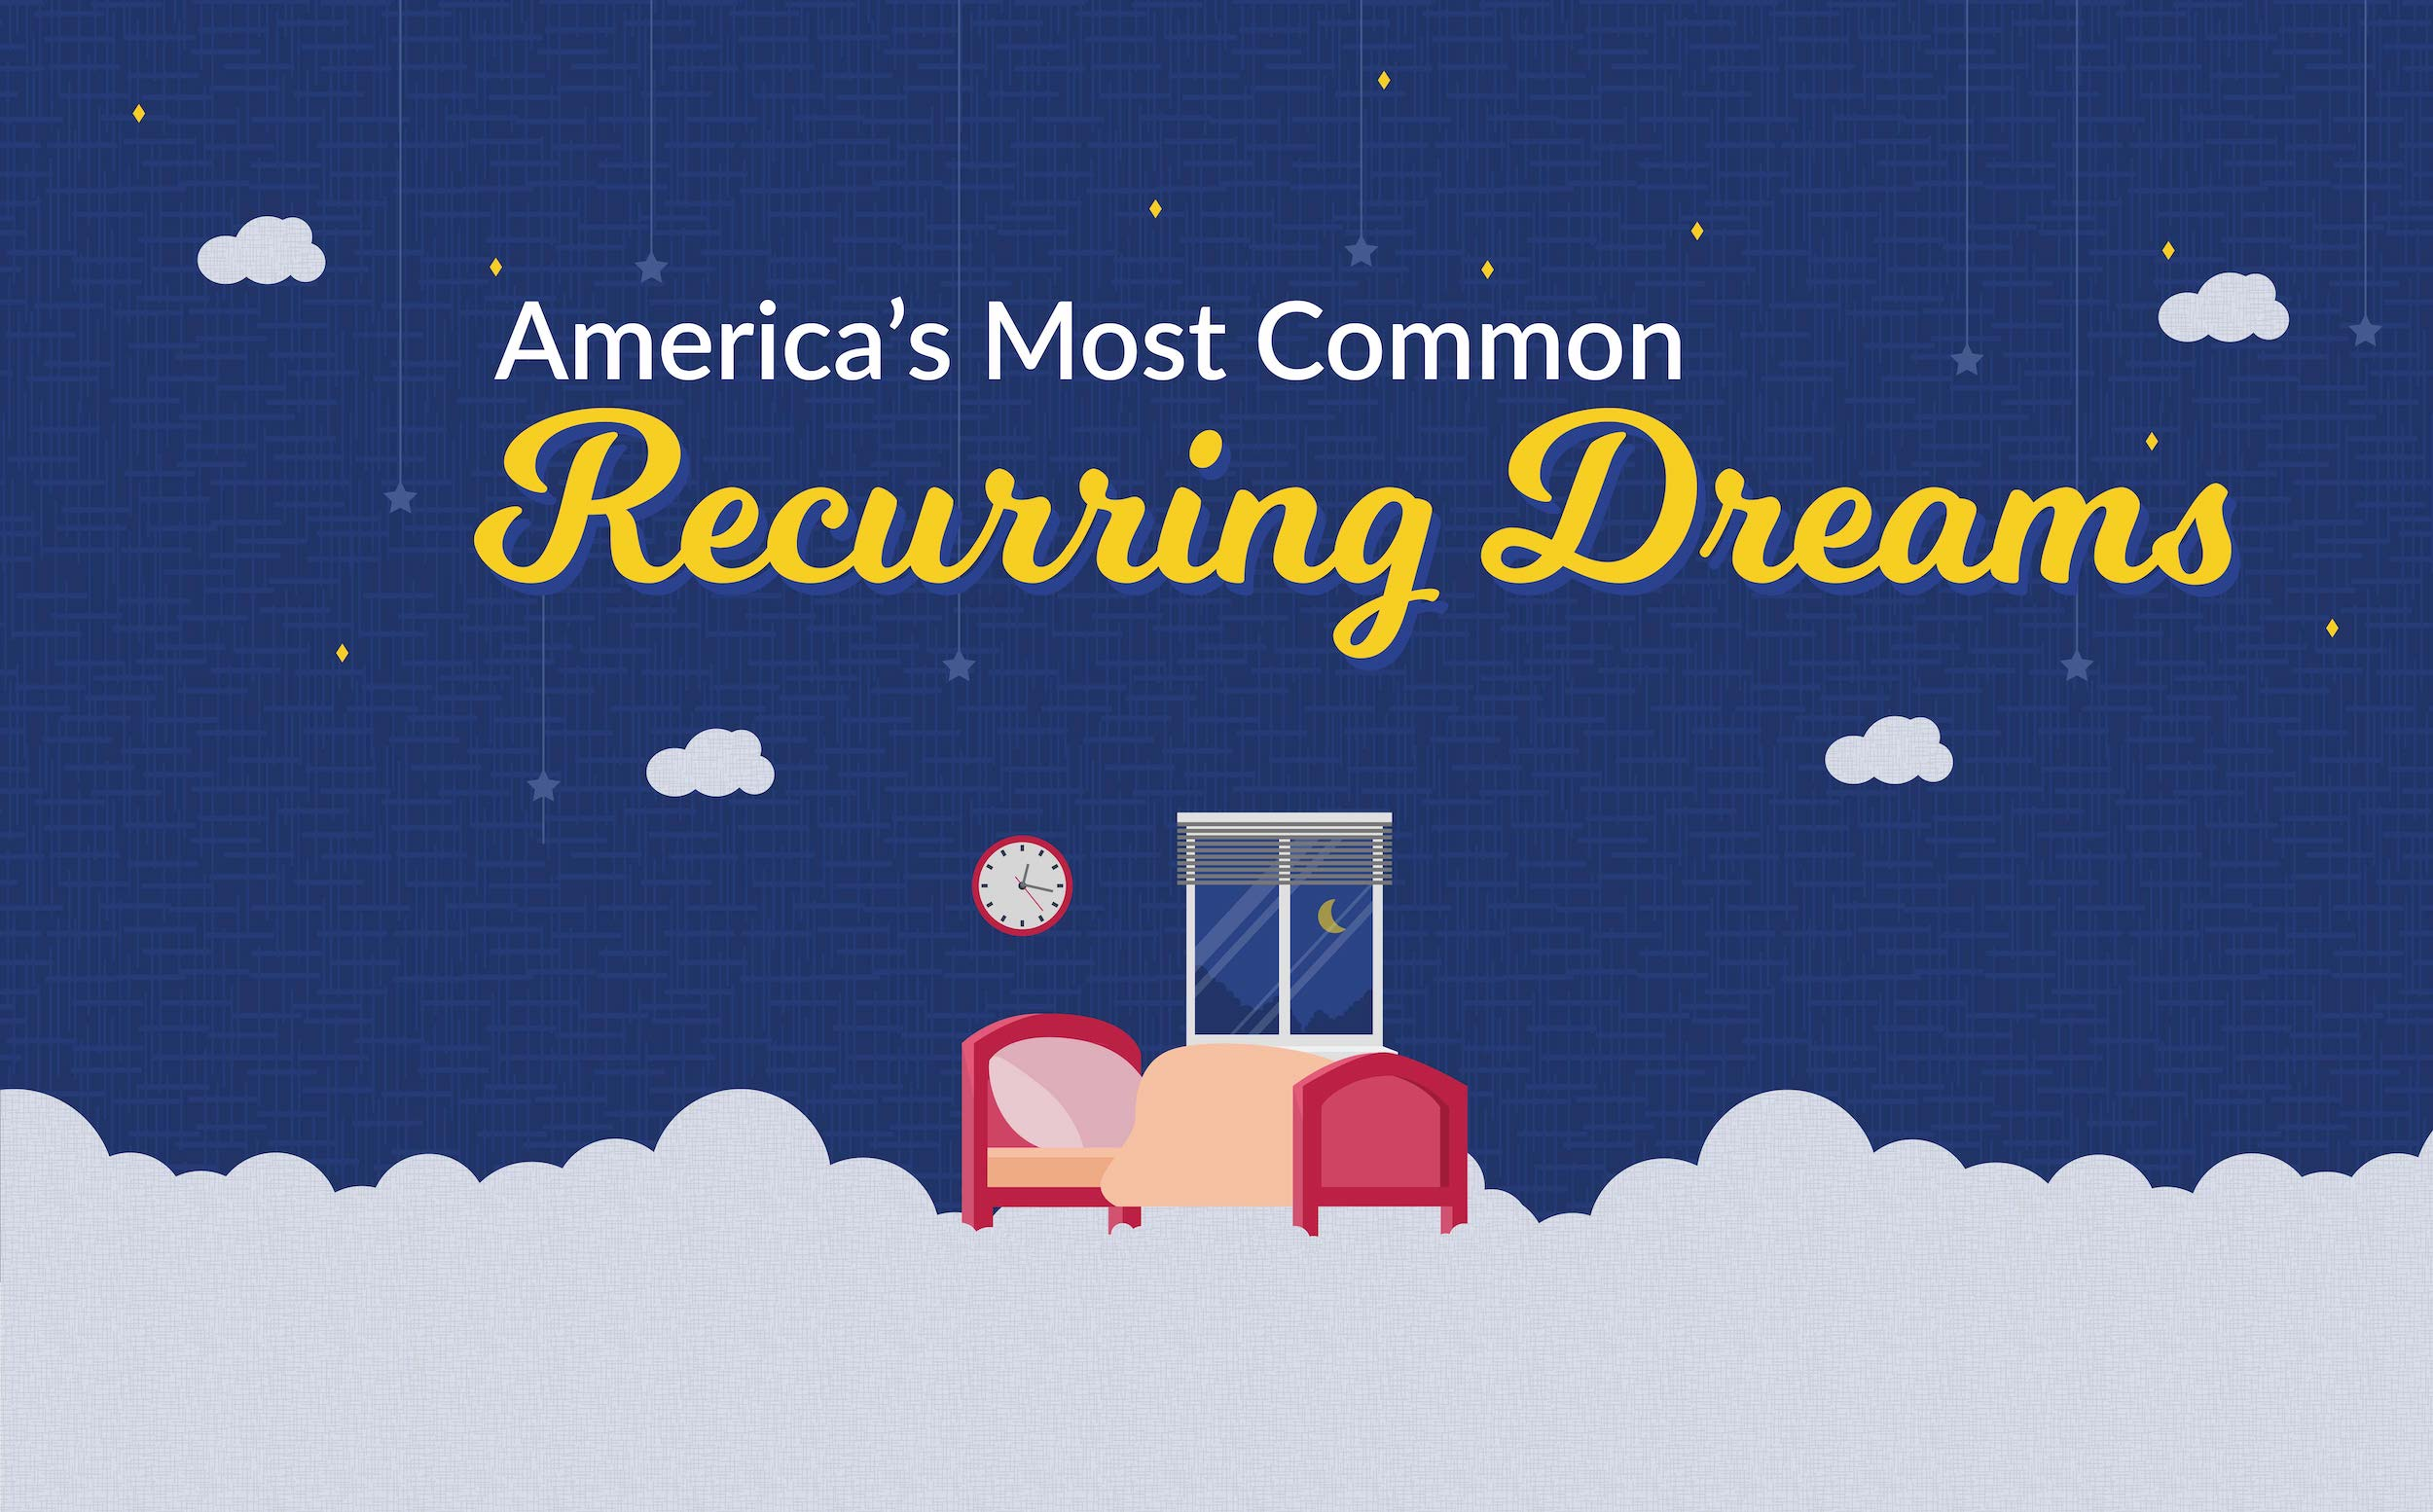 America's Most Common Recurring Dreams